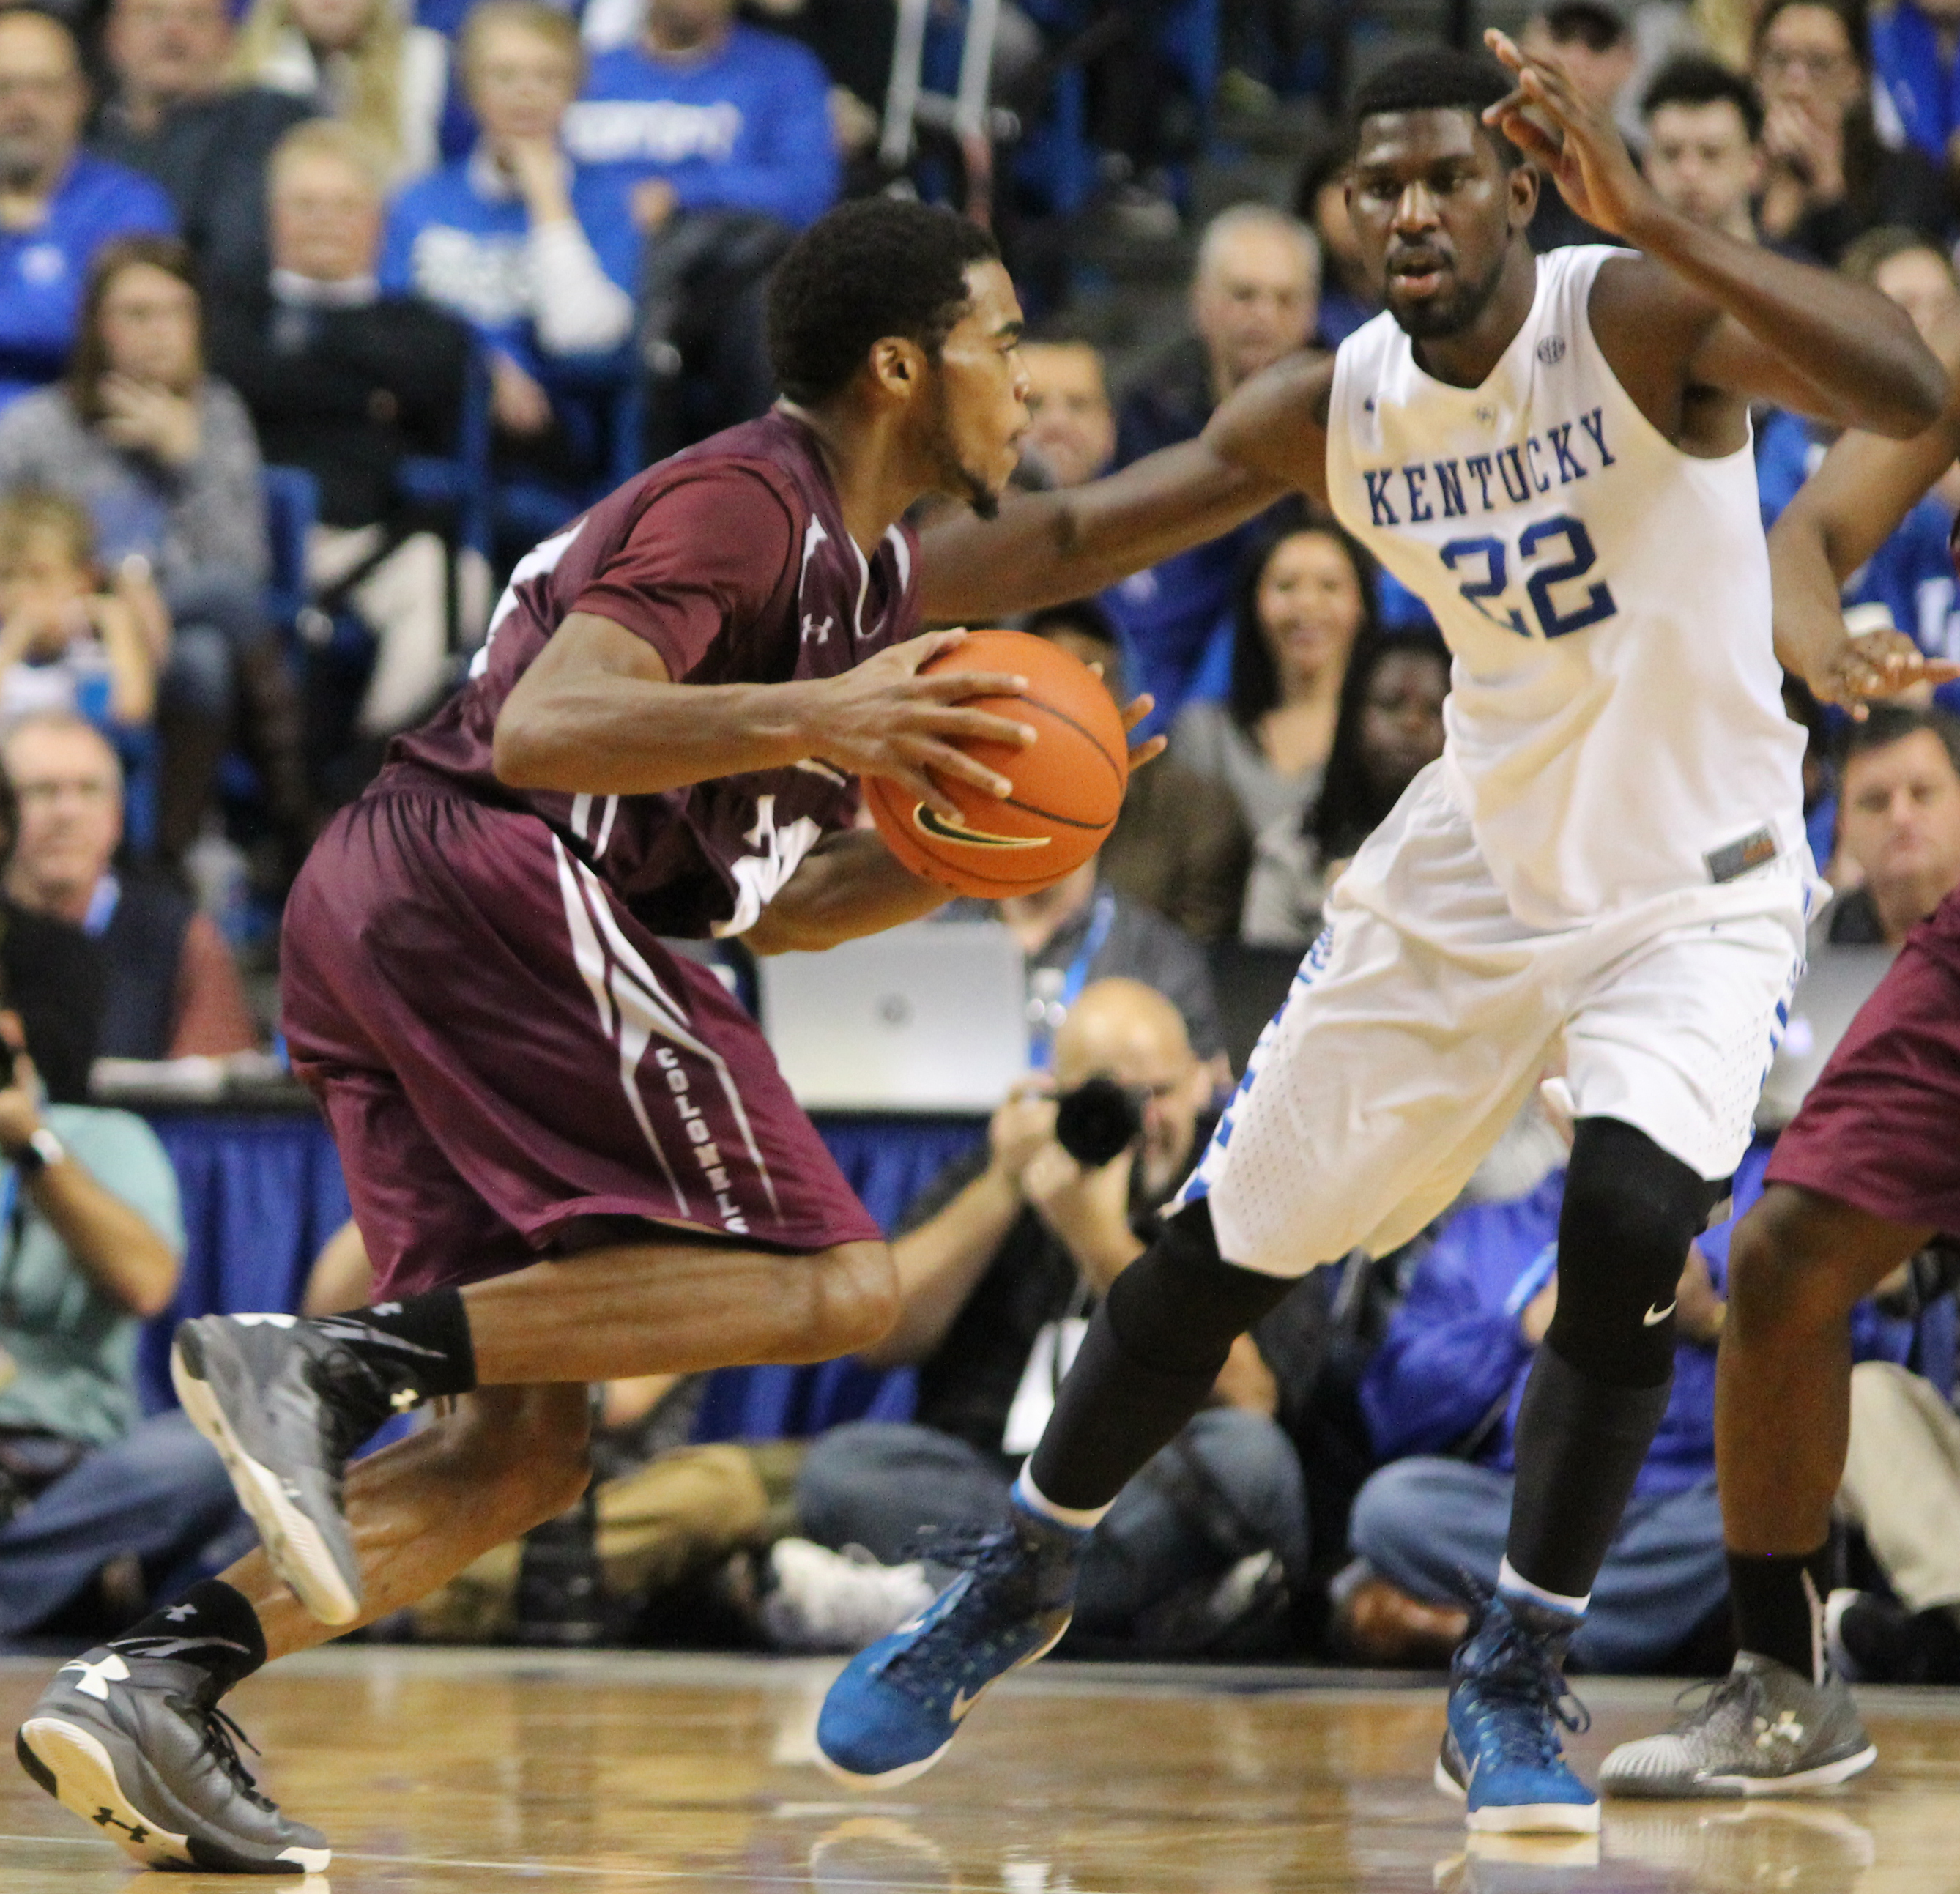 Fifth-ranked UK spoils McHale's return to Rupp Arena